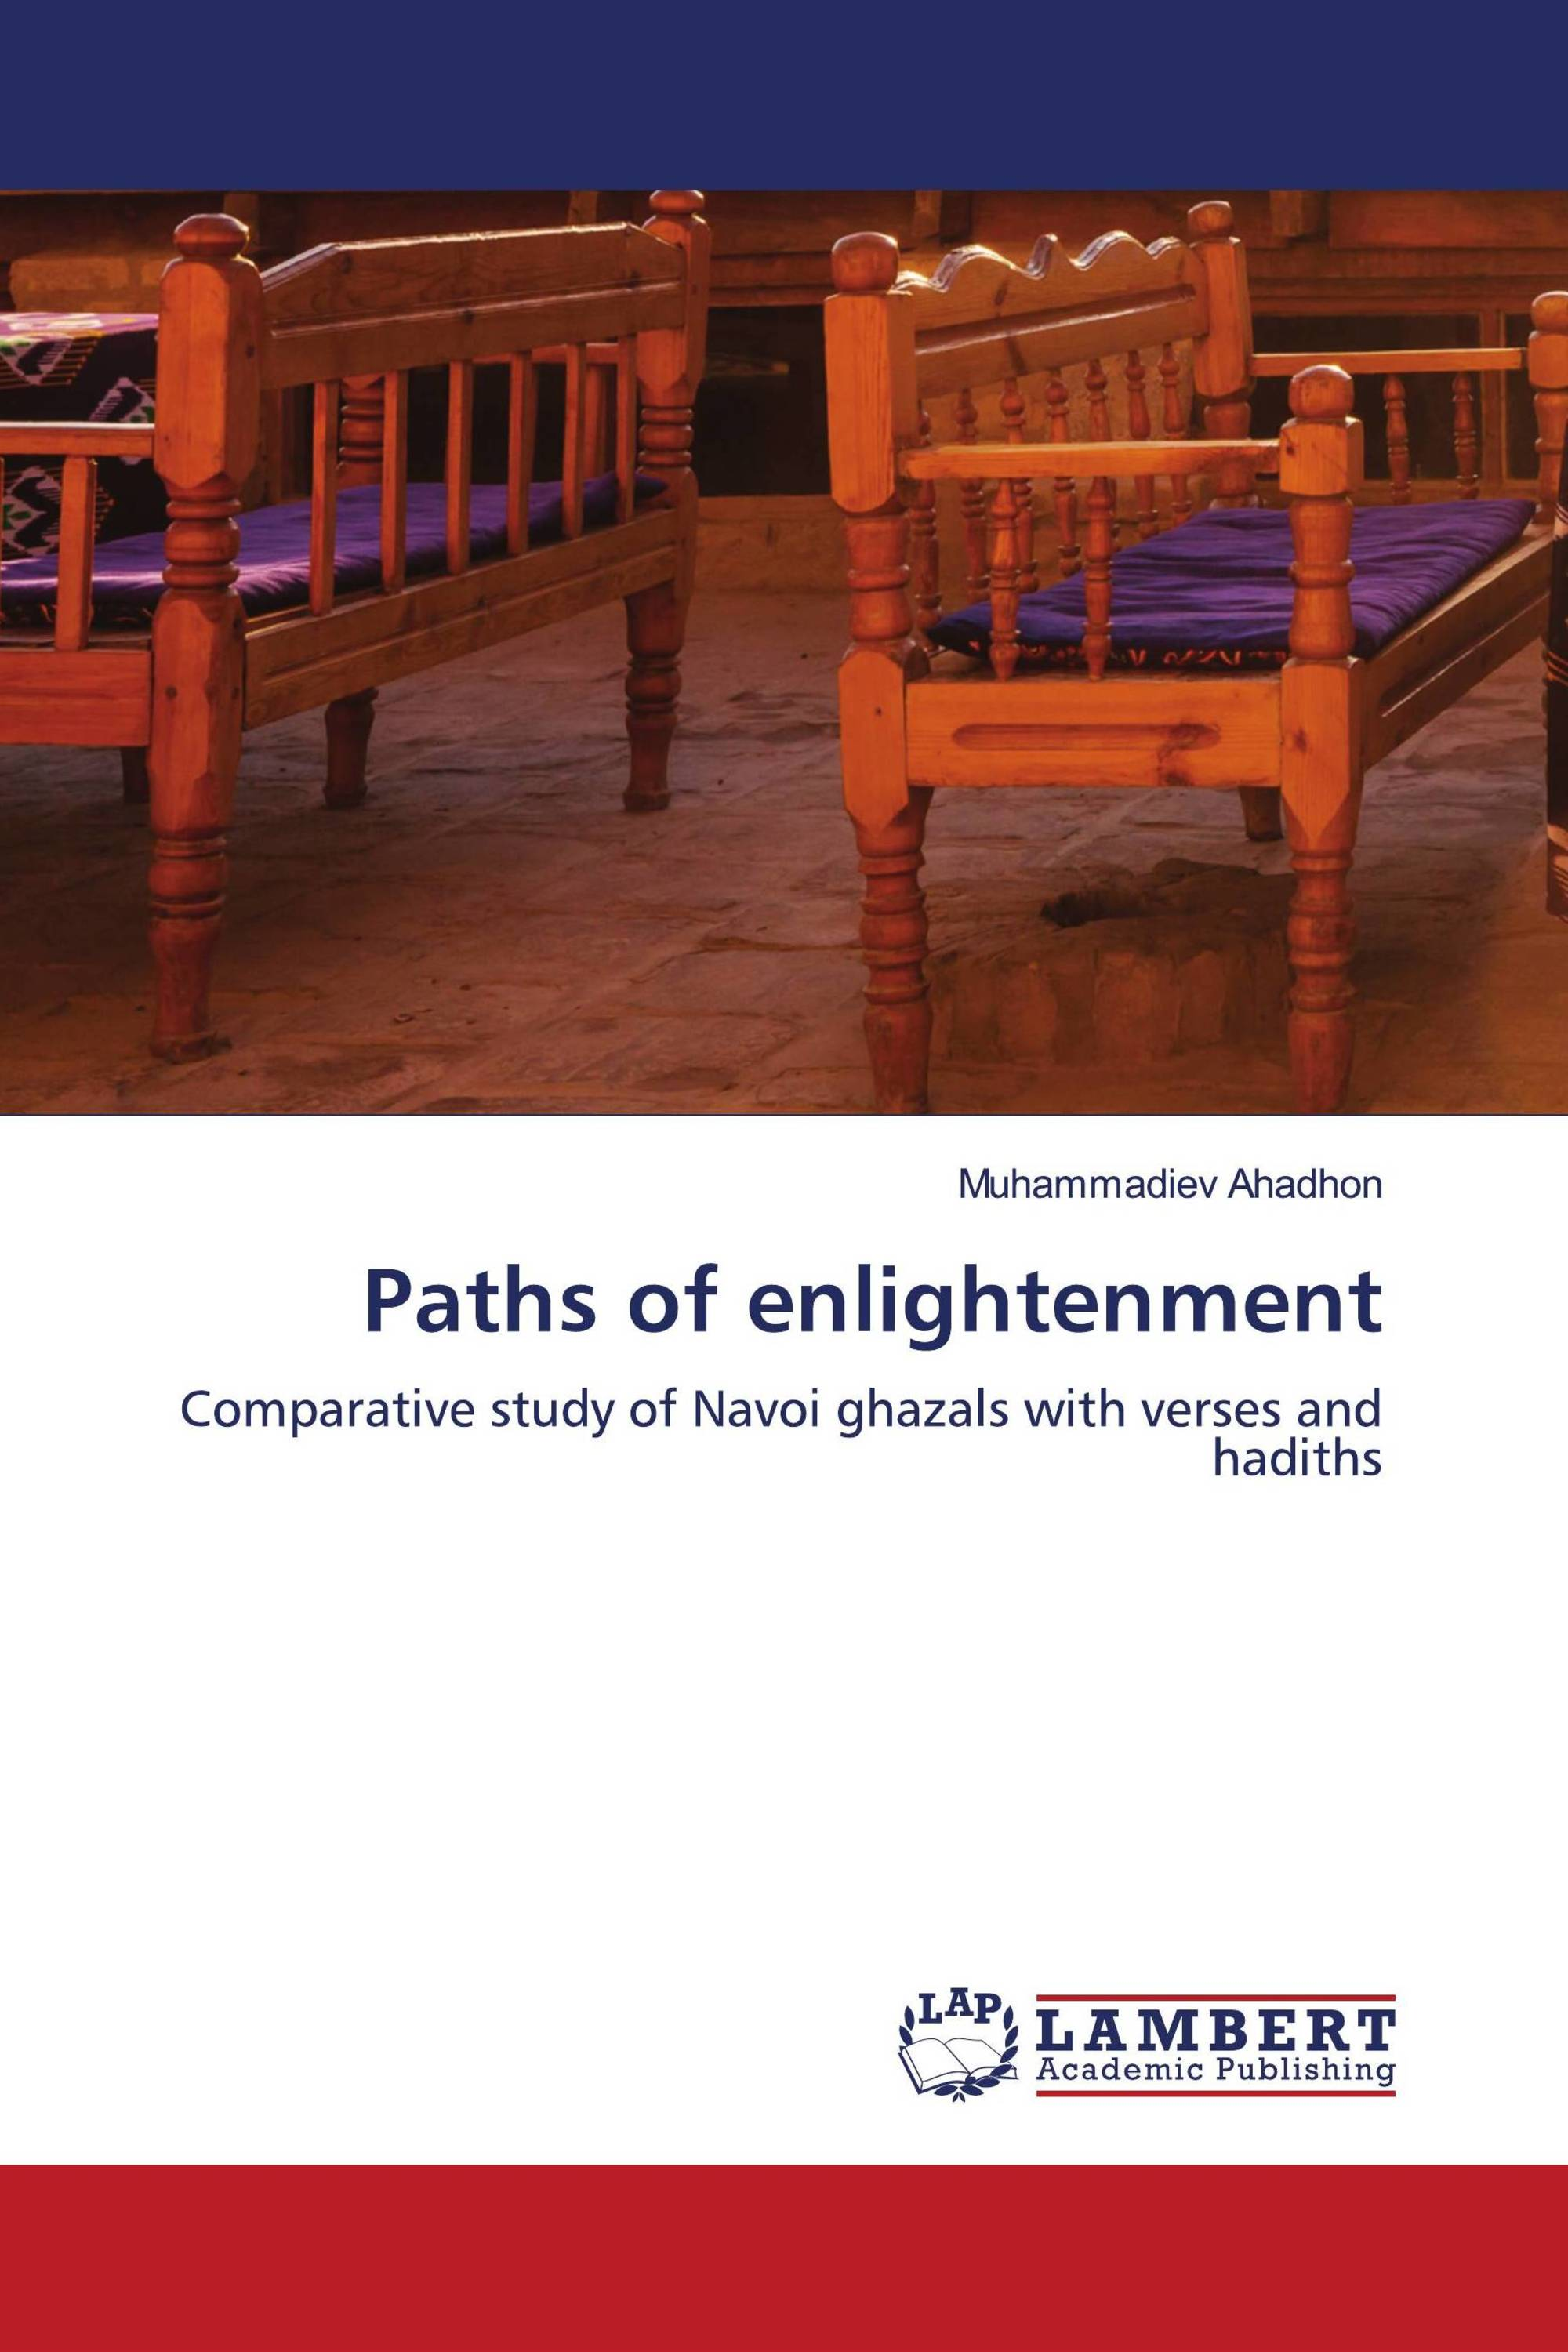 Paths of enlightenment